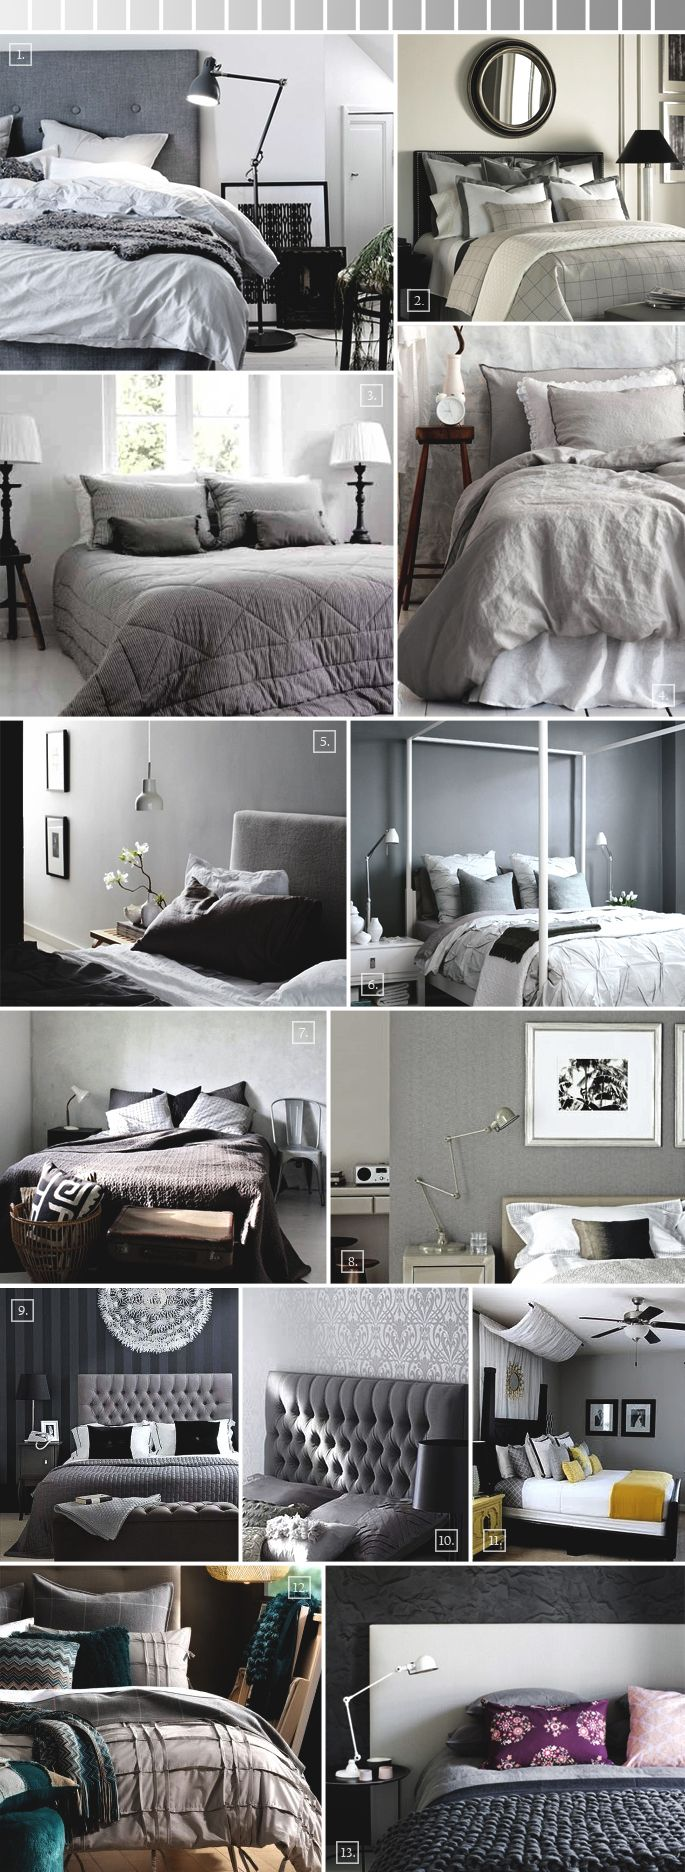 best home sweet home images on pinterest